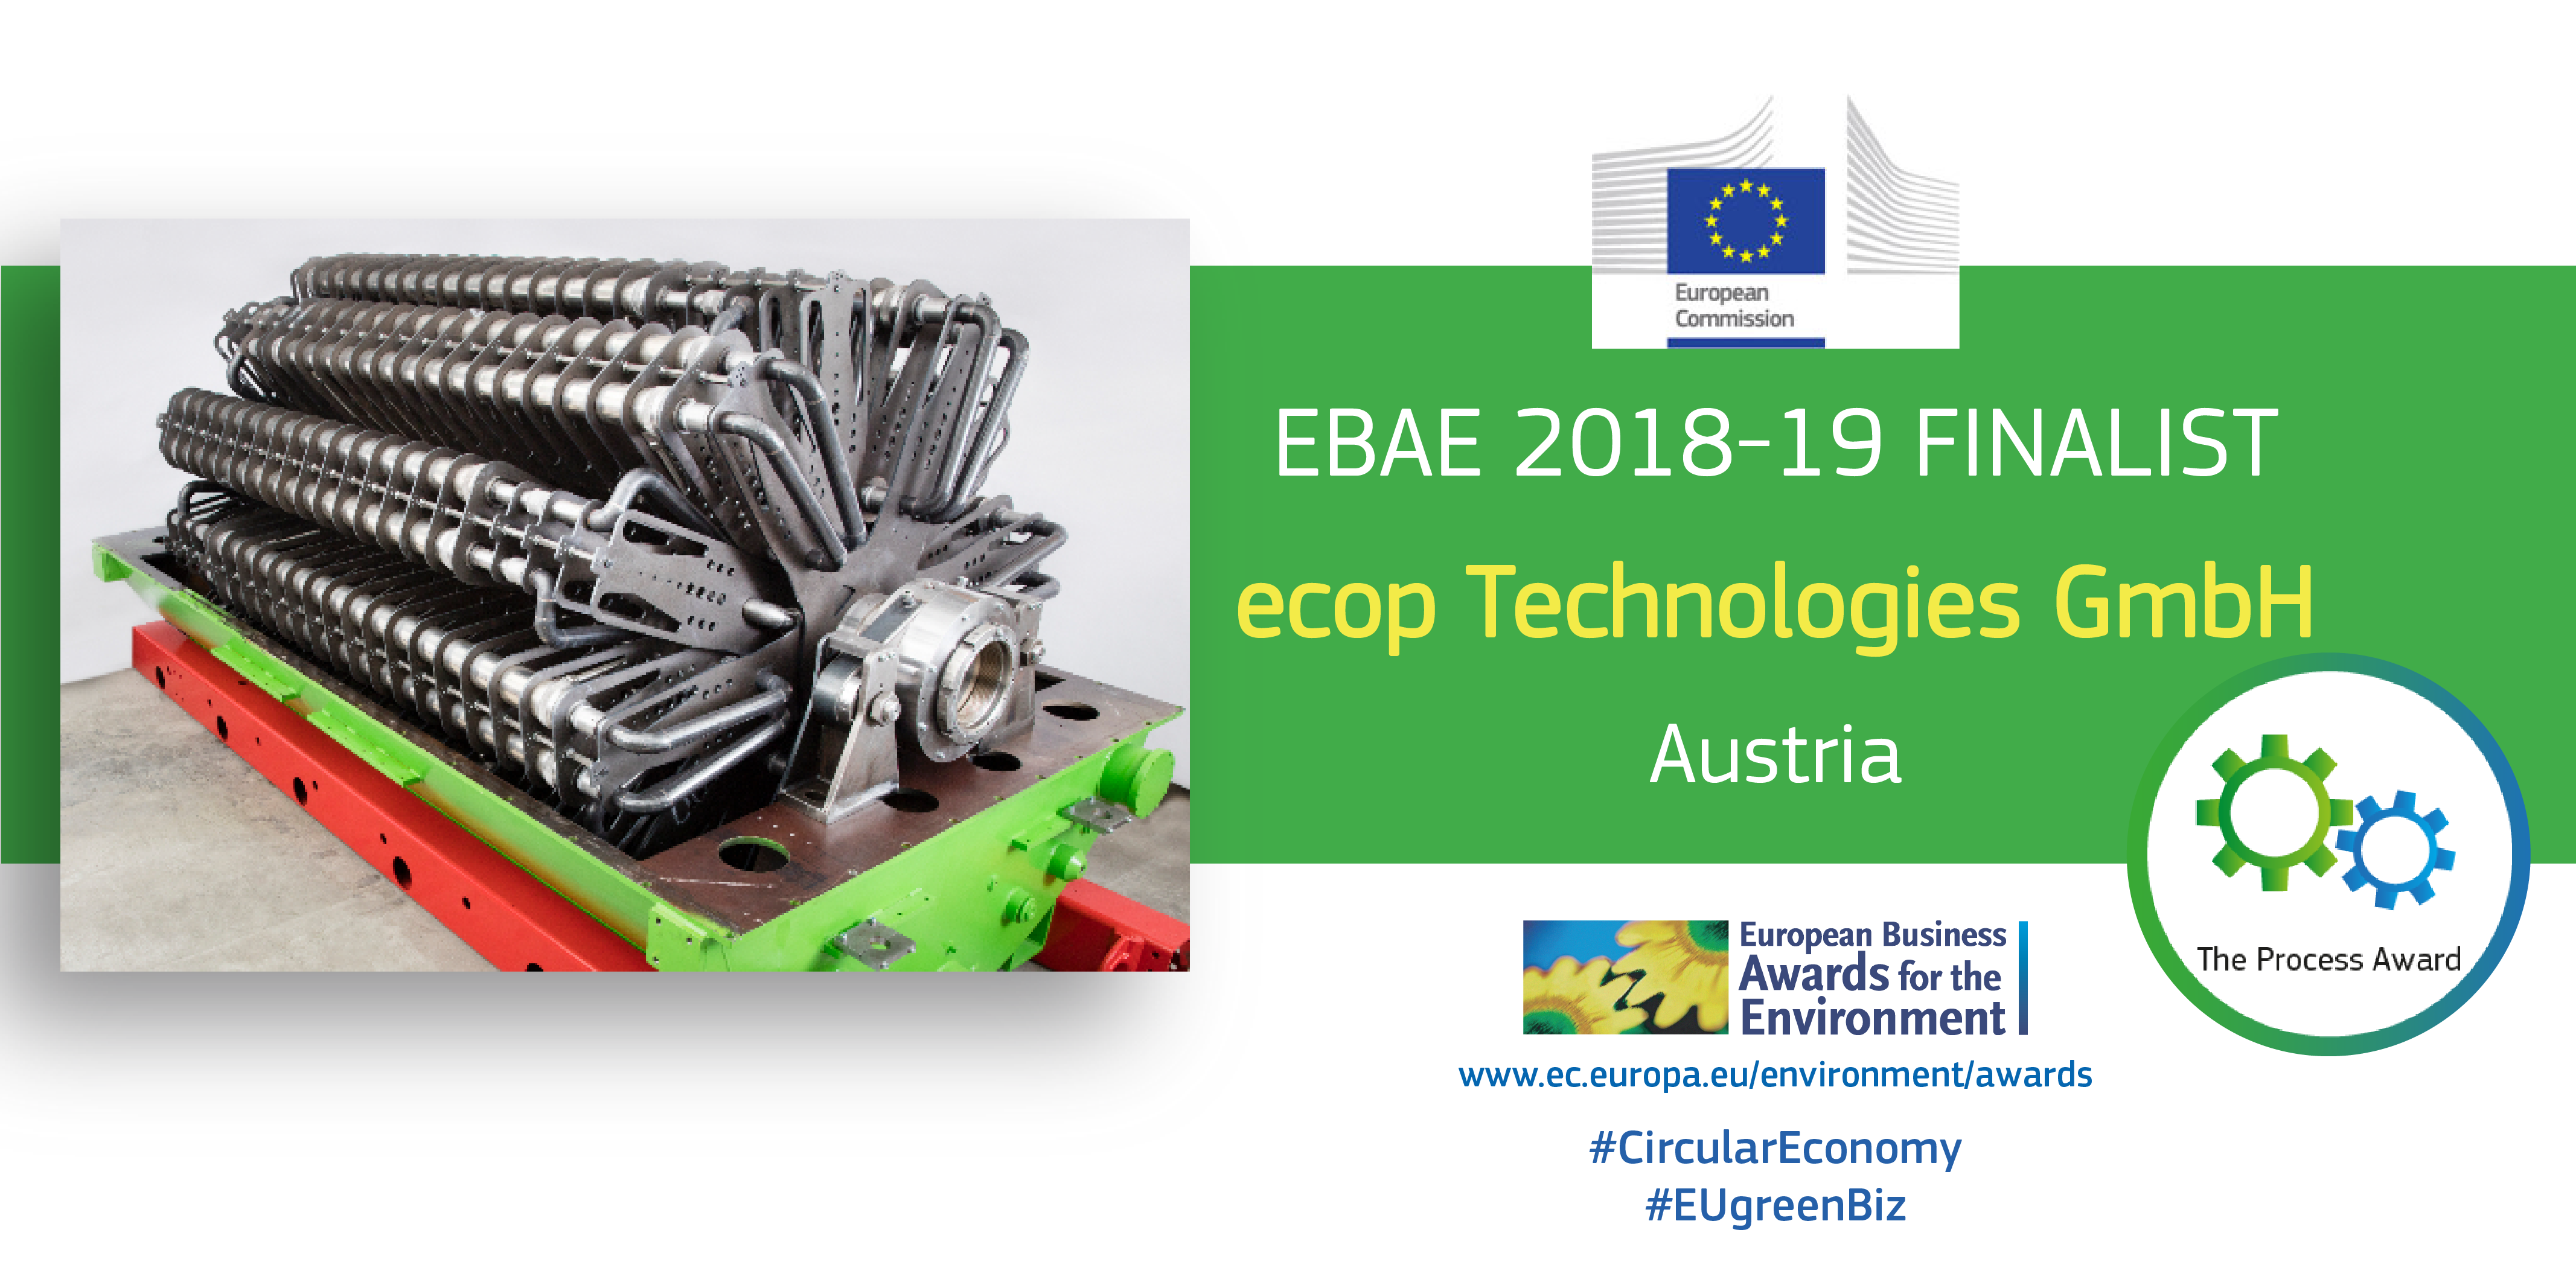 ecop shortlisted for European Business Awards for the Environment